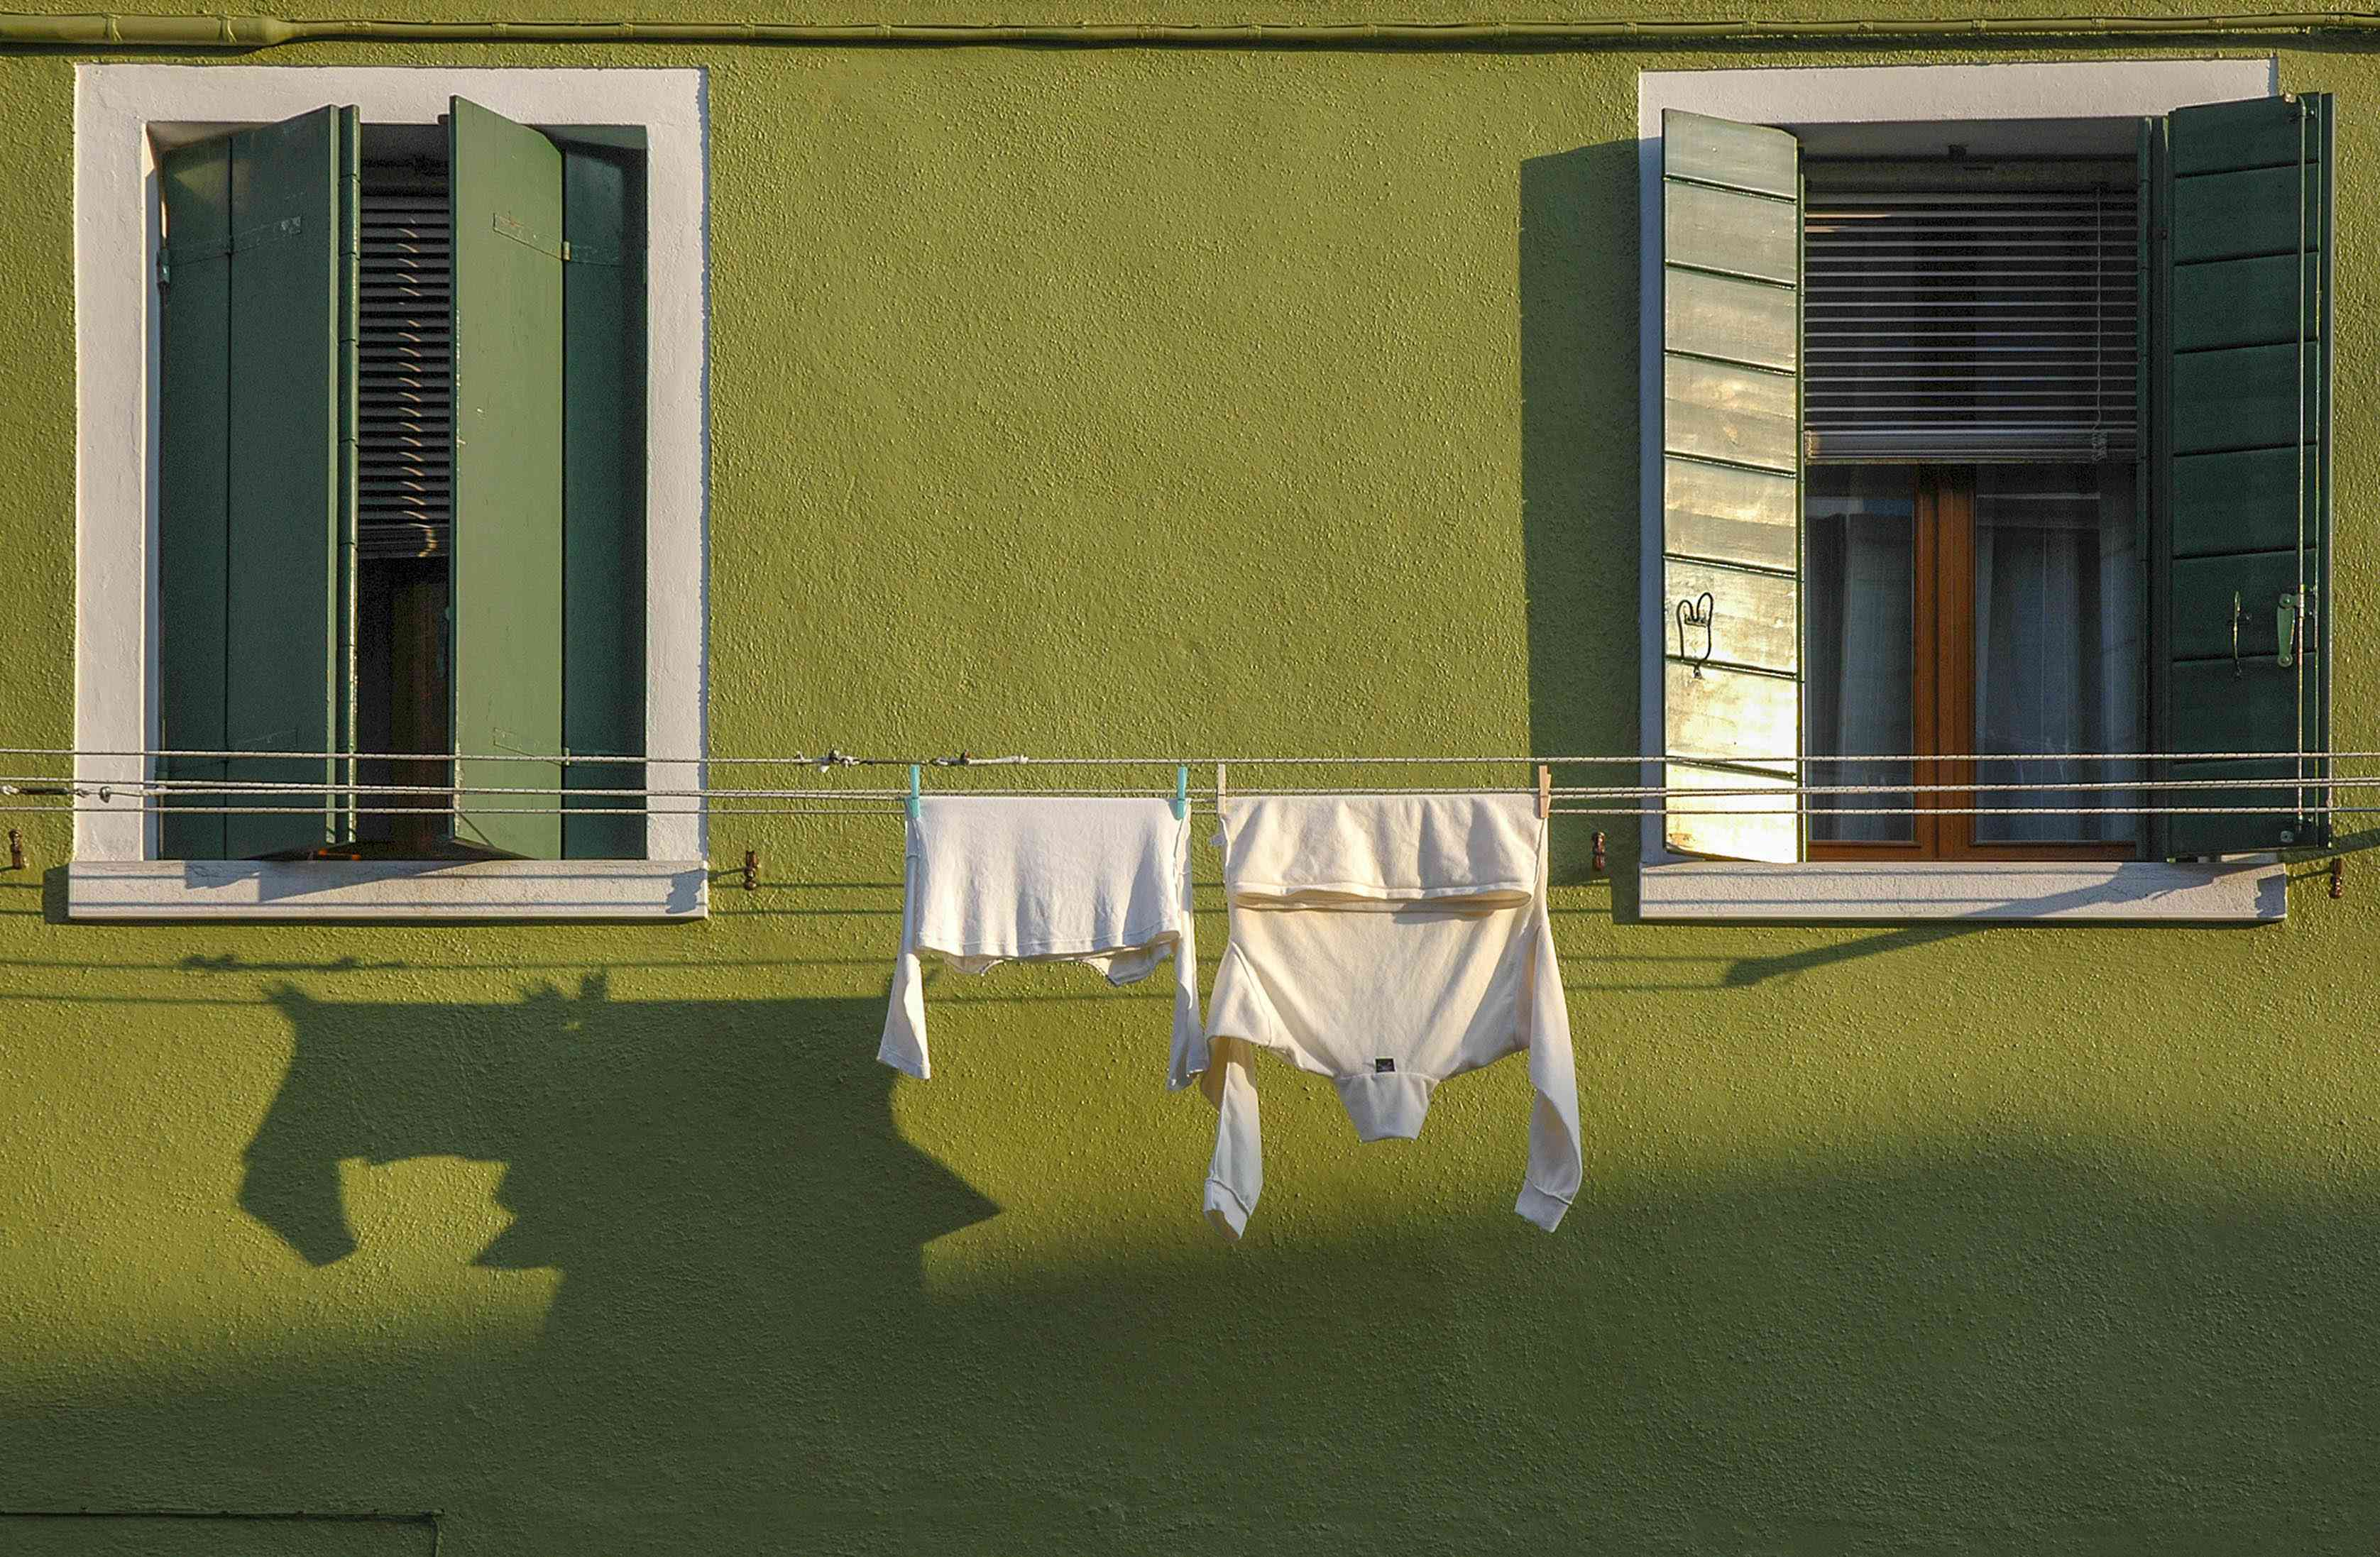 Clothes dry in the sun on a clothesline strung between two windows.